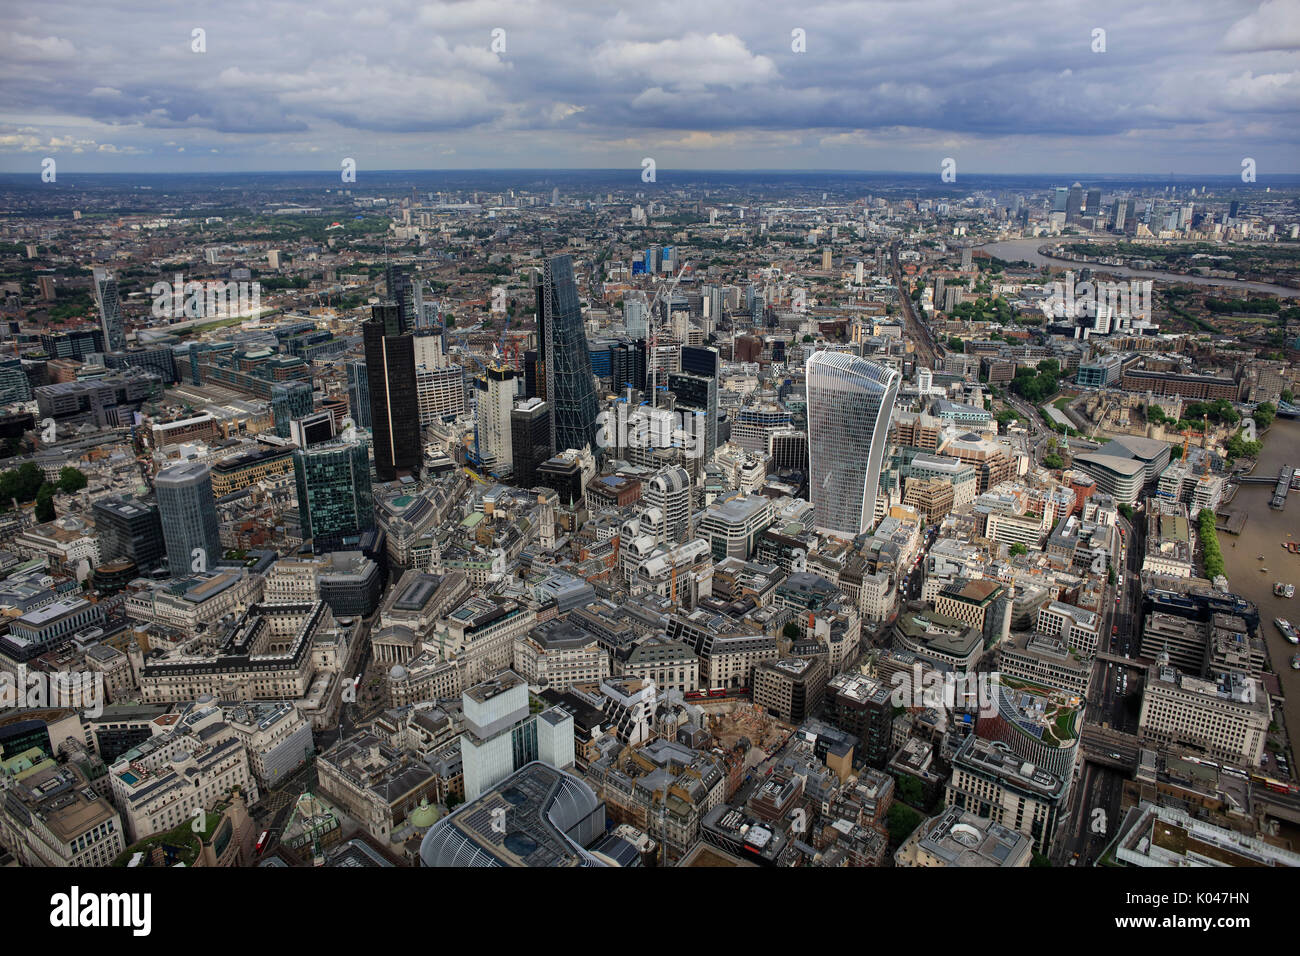 An aerial view of the skyscrapers in the City of London - Stock Image